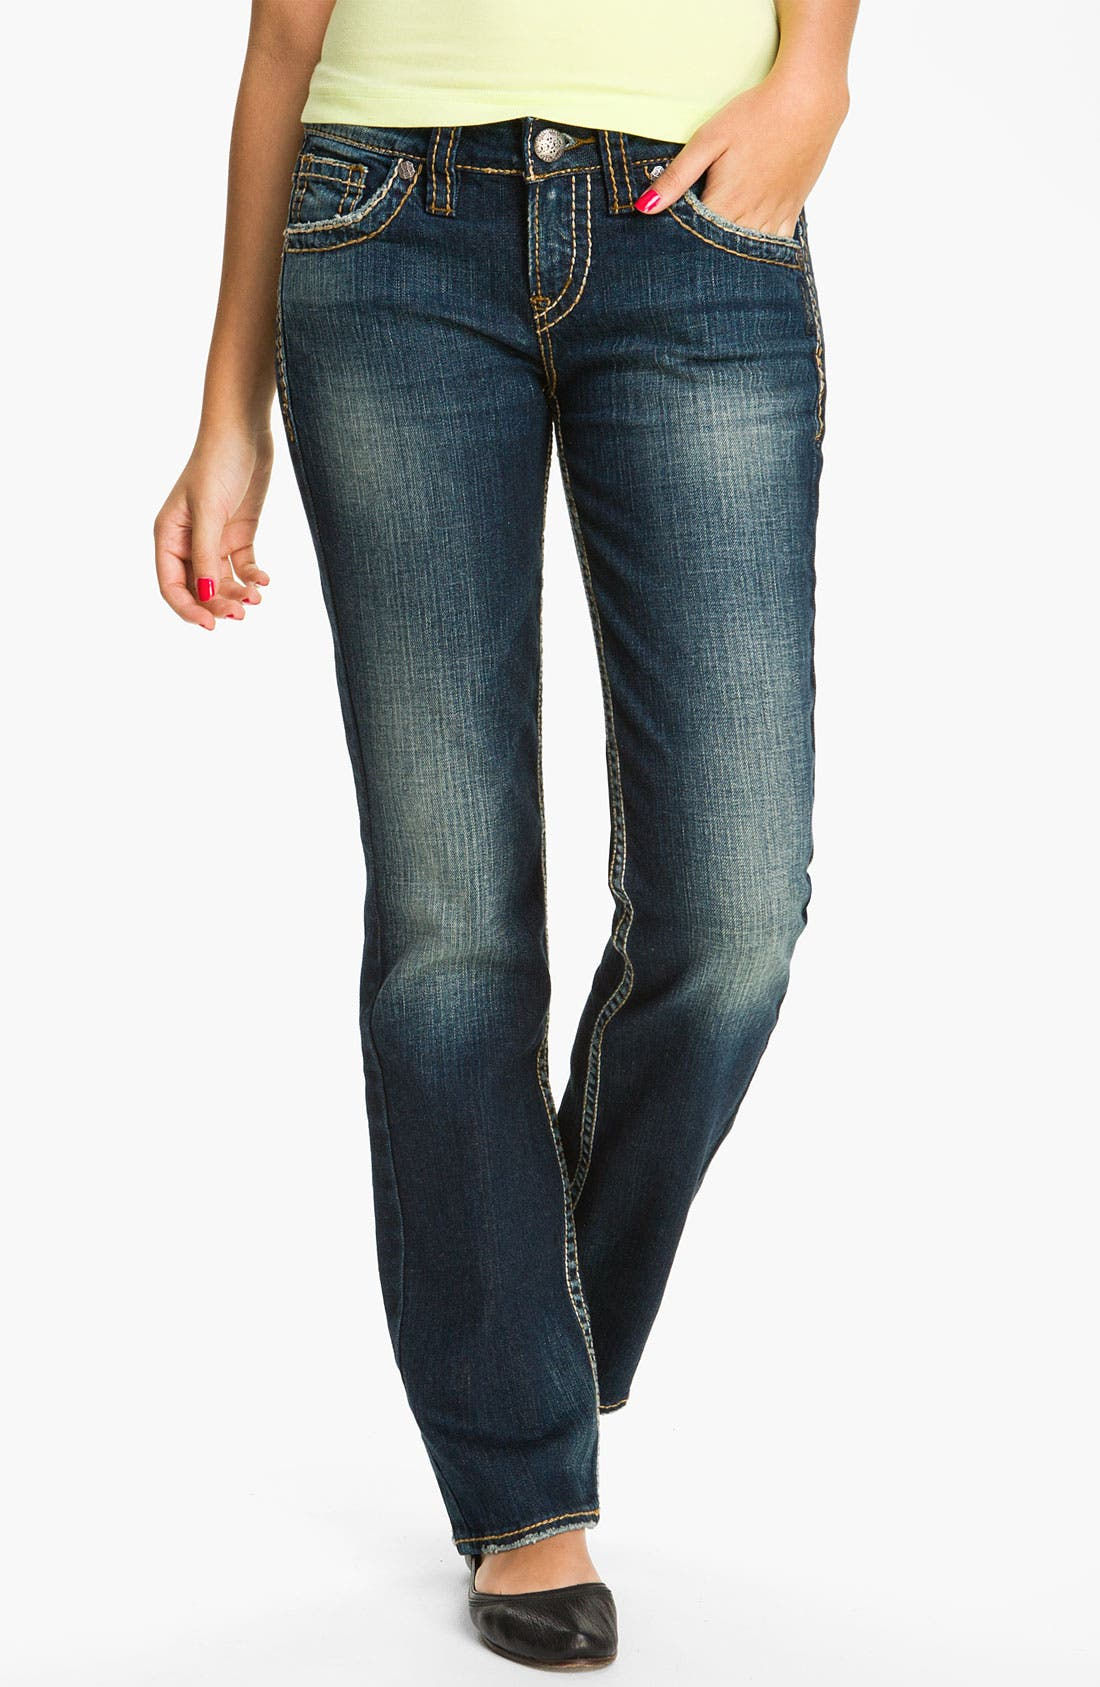 Alternate Image 1 Selected - Silver Jeans Co. 'Lola' Bootcut Jeans (Juniors)